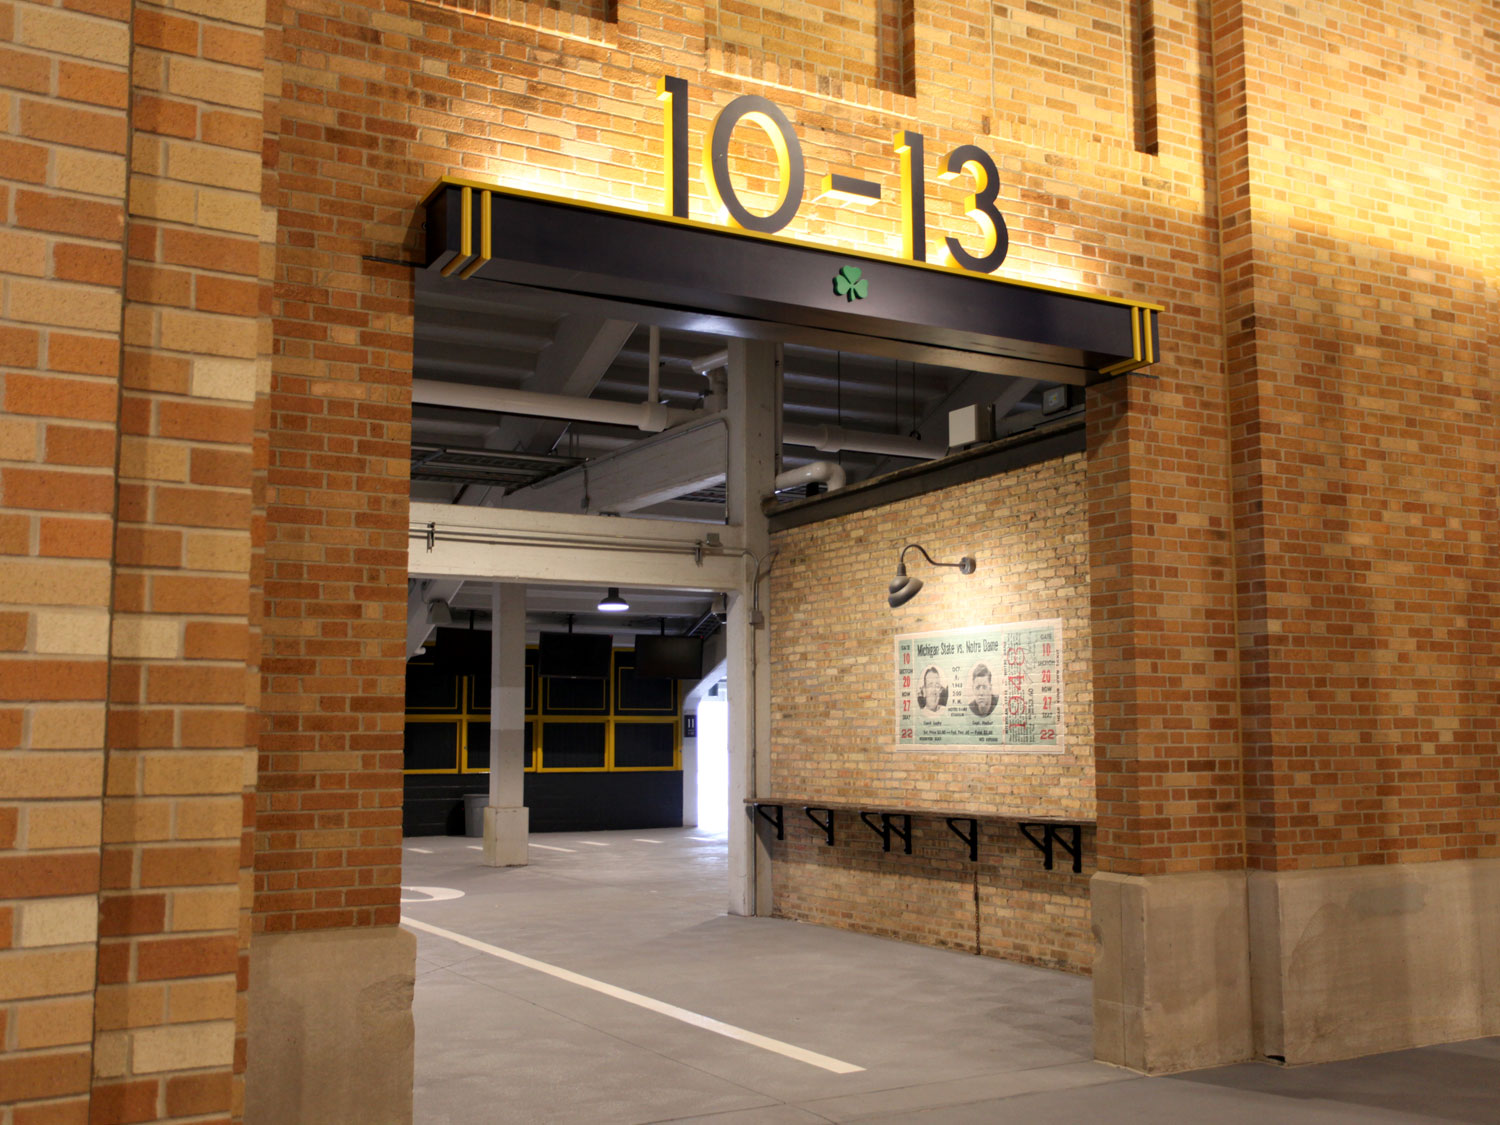 University of Notre Dame Indoor Stadium Section Signage